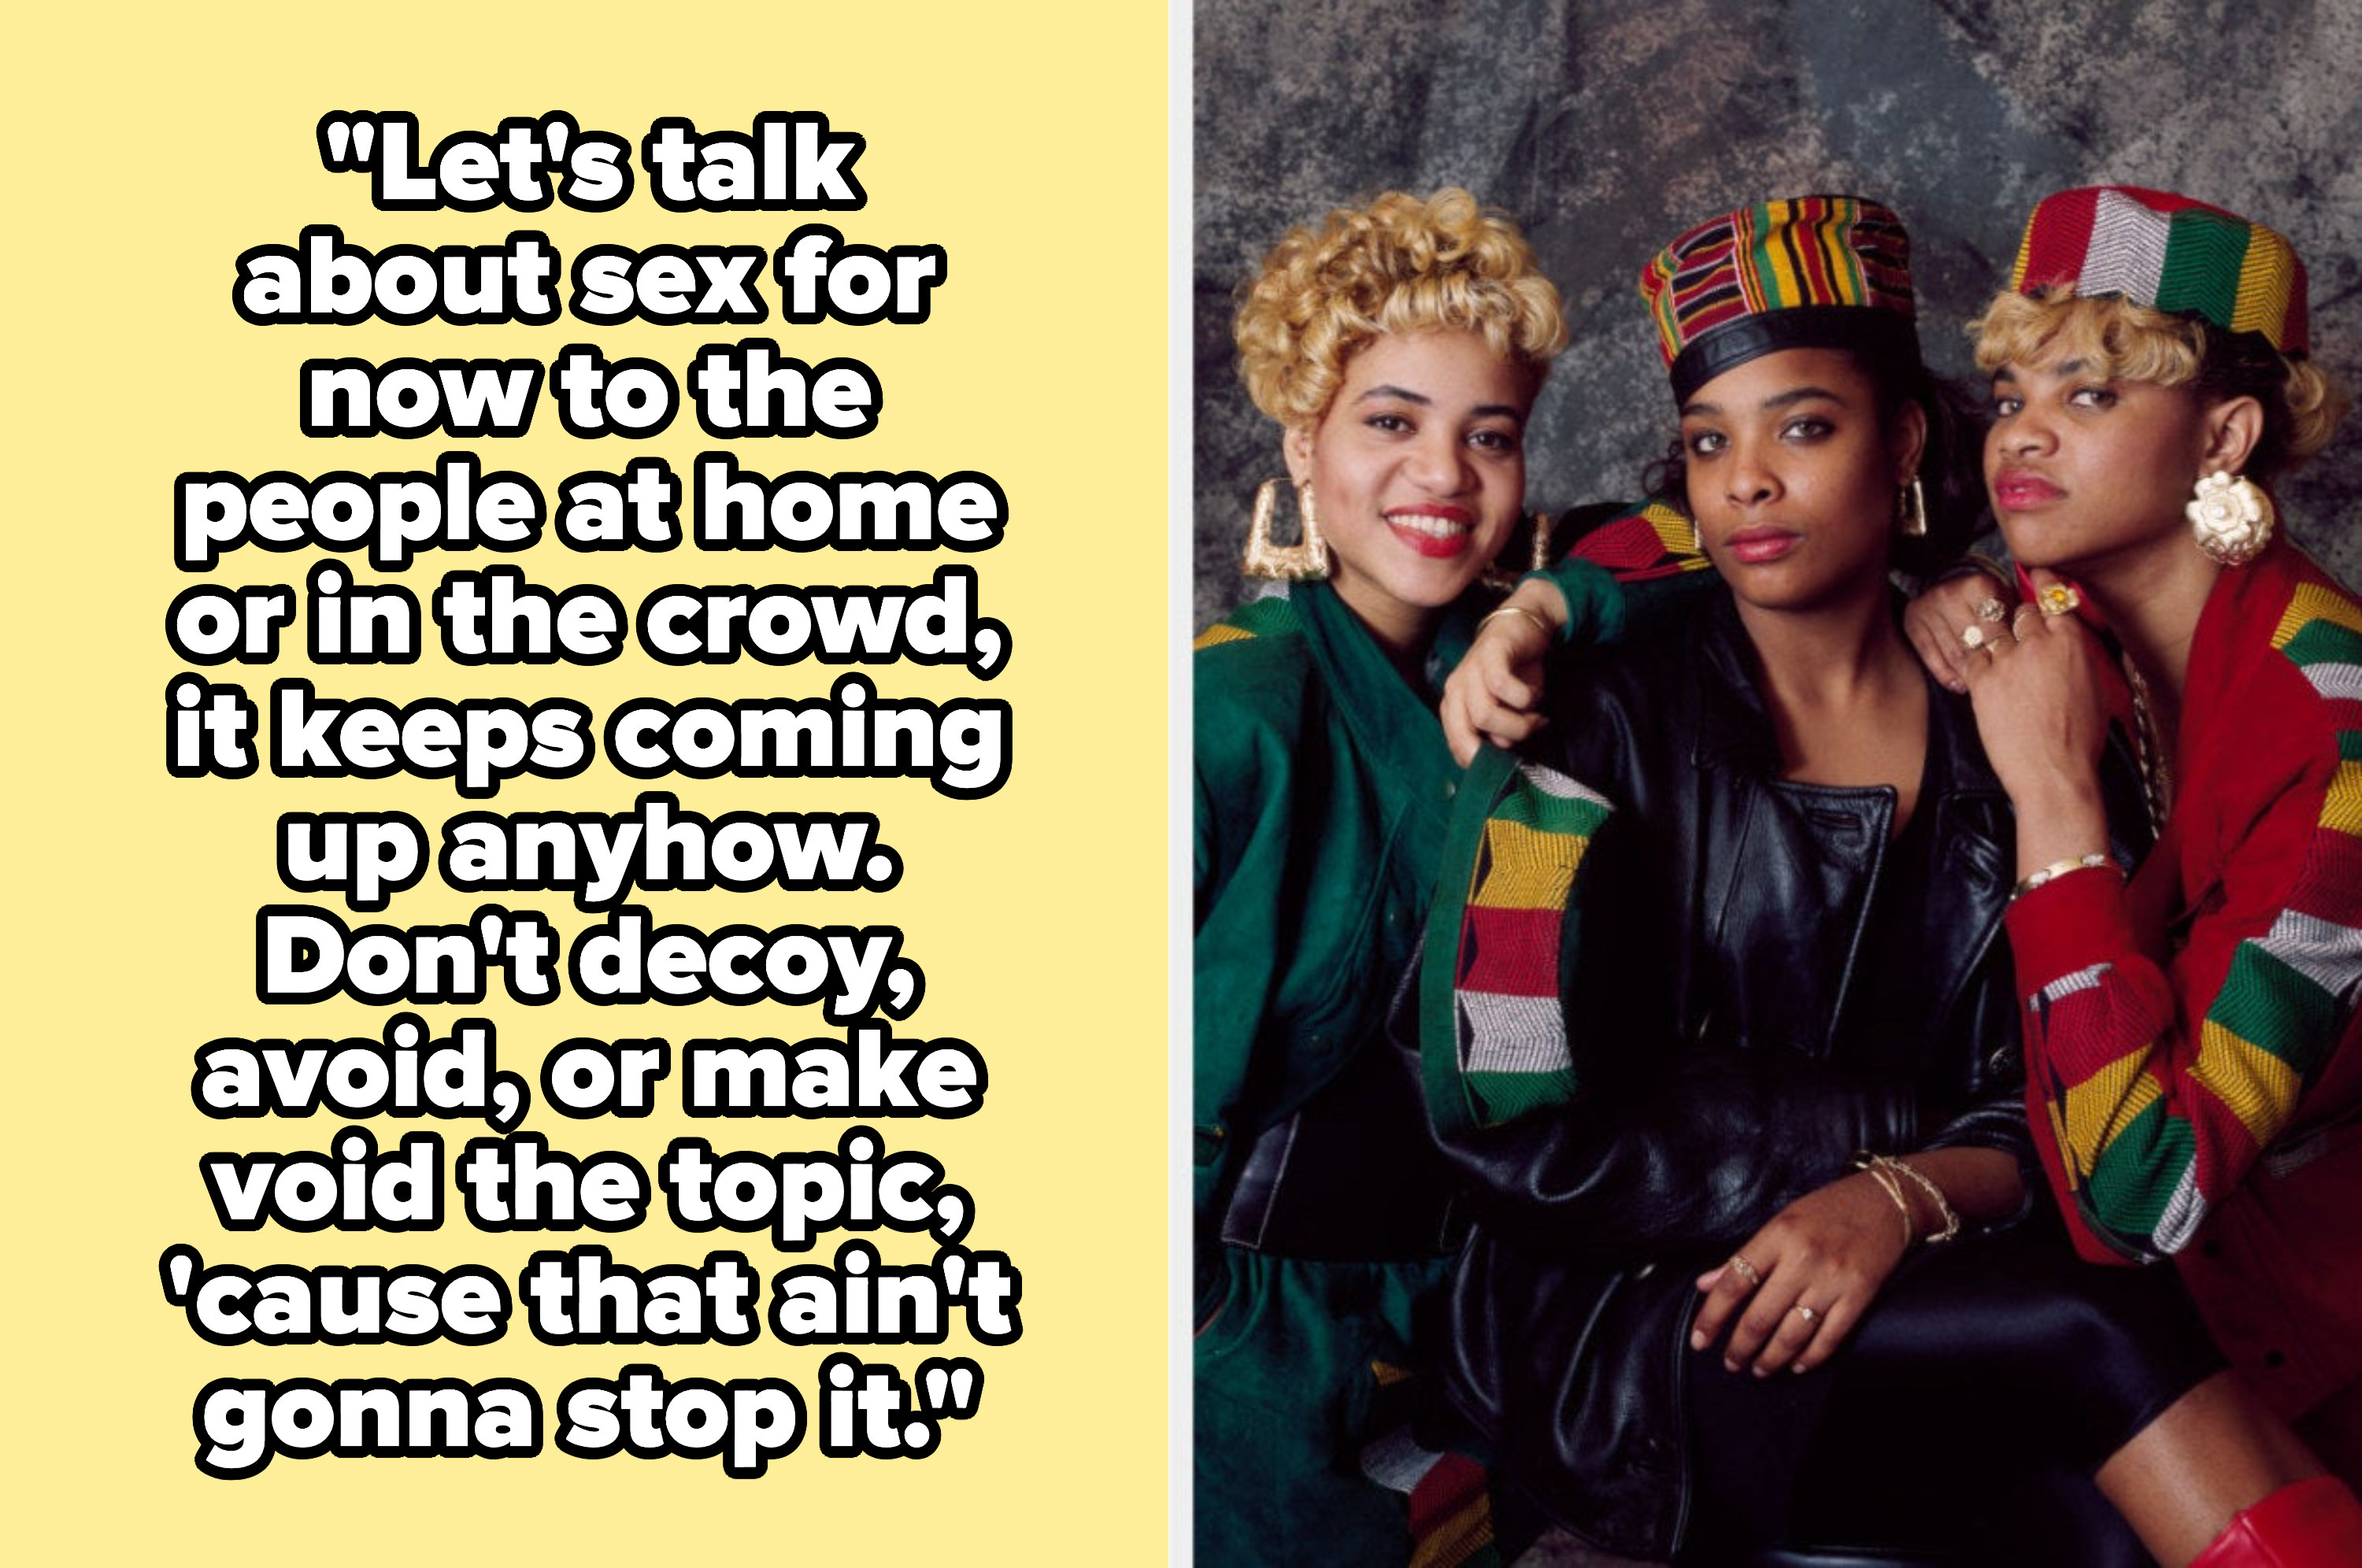 """Salt-N-Pepa lyrics: """"""""Let's talk about sex for now to the people at home or in the crowd, it keeps coming up anyhow. Don't decoy, avoid, or make void the topic, 'cause that ain't gonna stop it"""""""